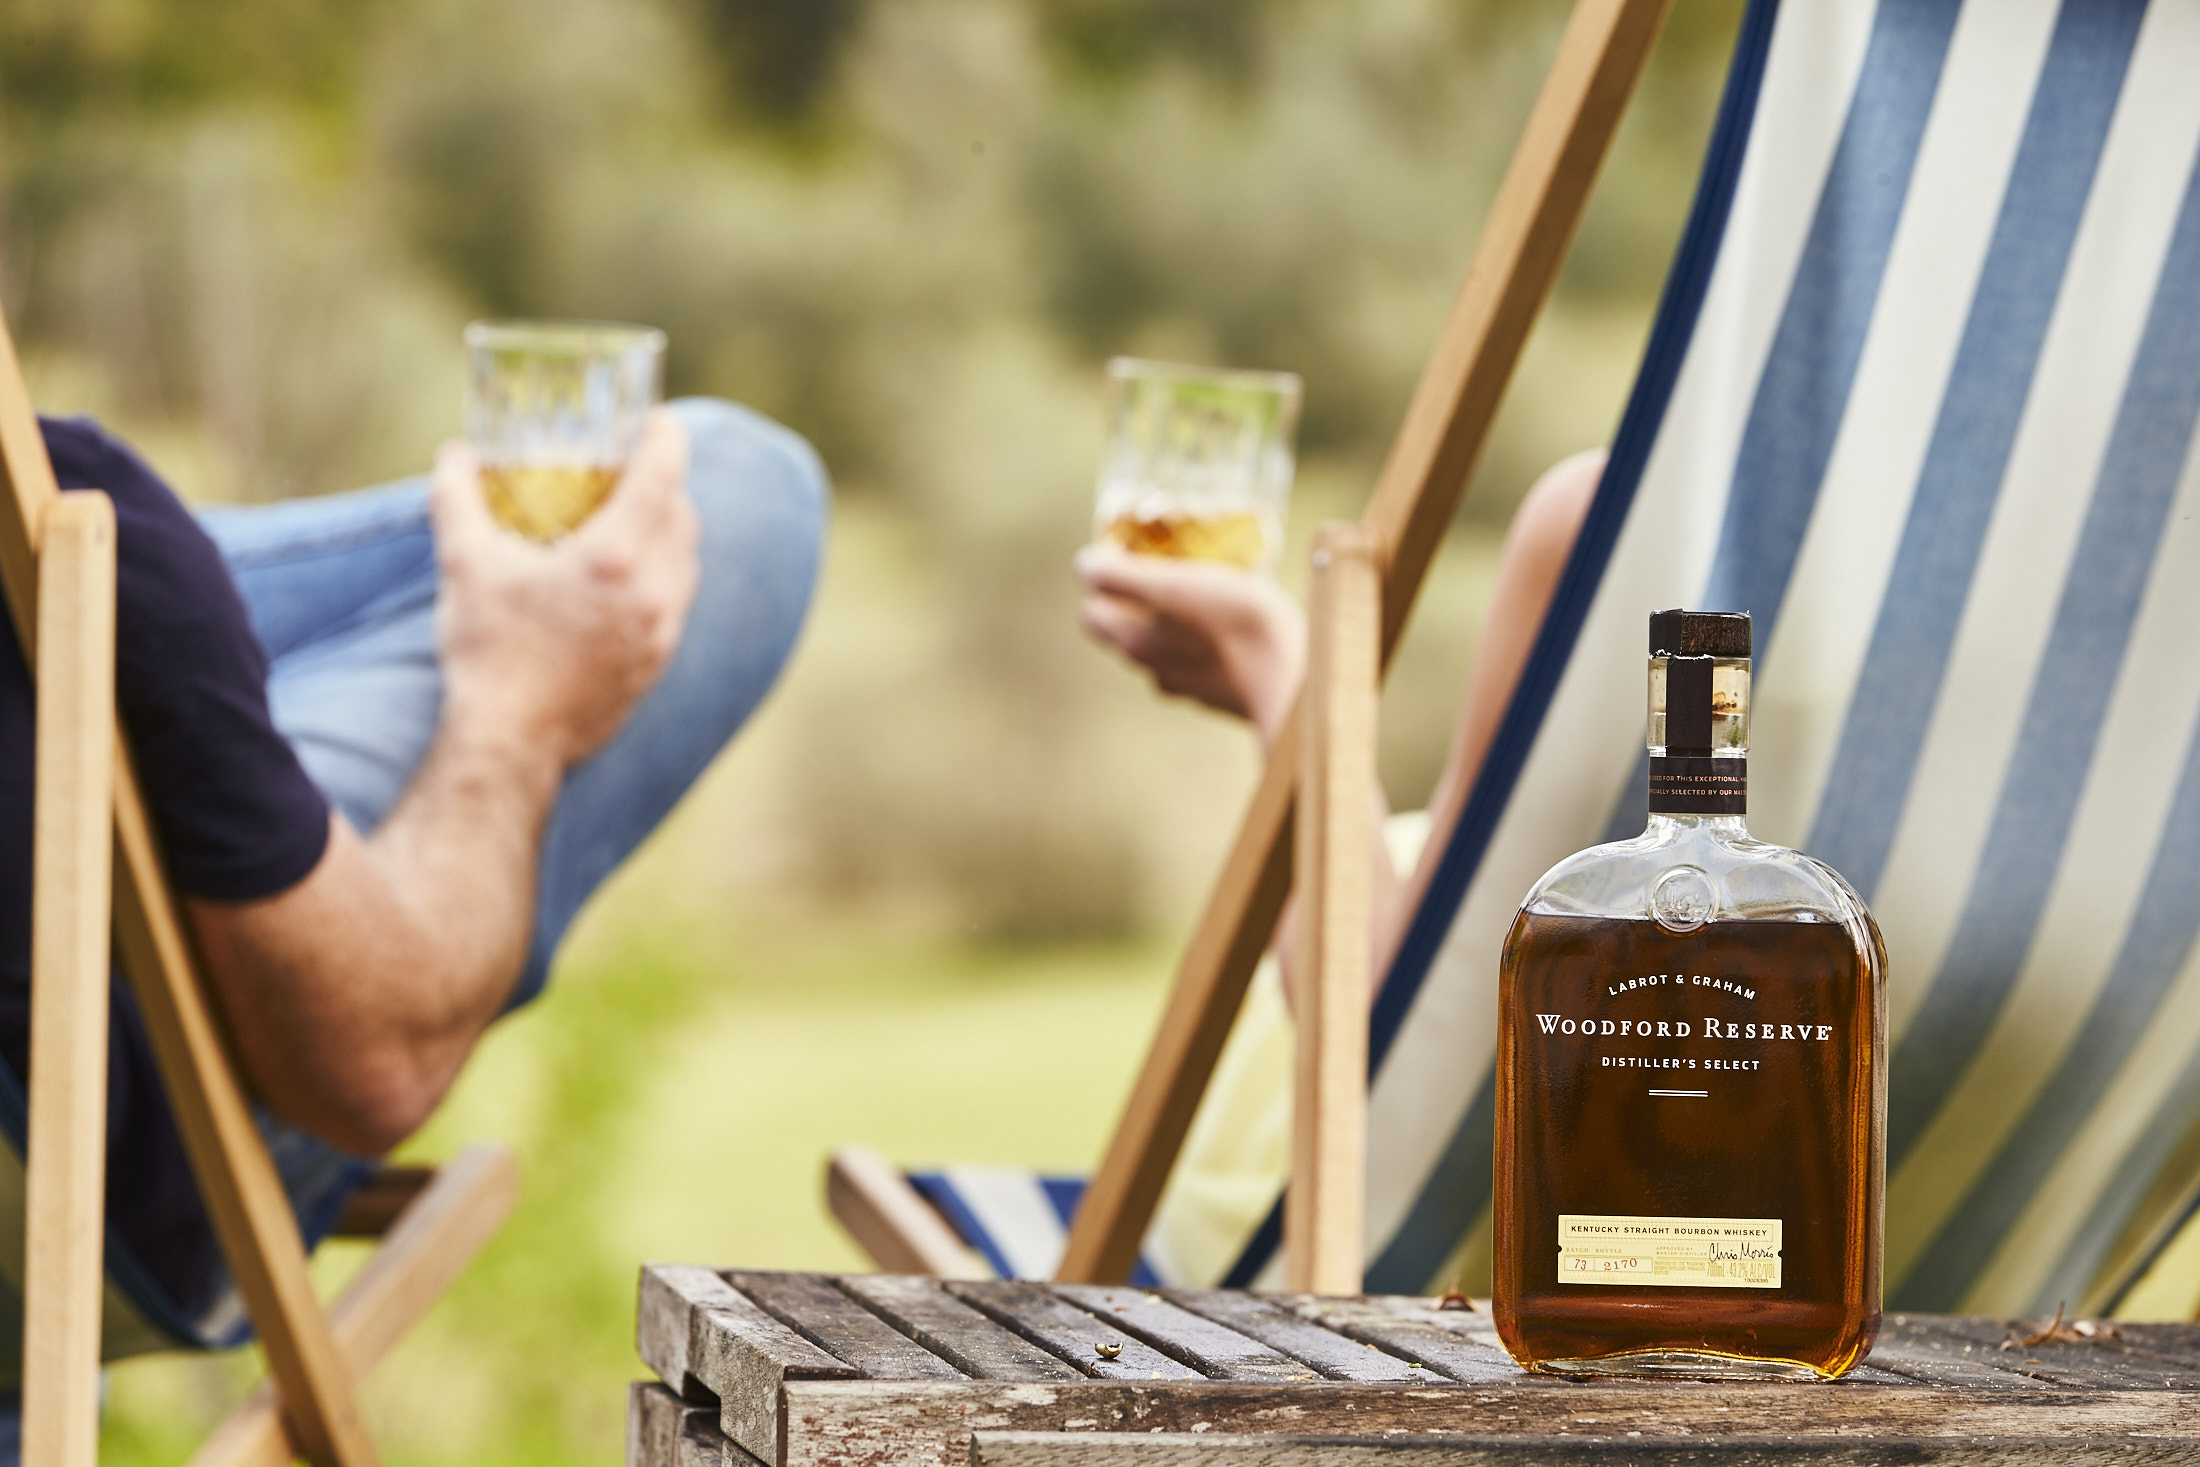 BROWN FORMAN / WOODFORD RESERVE